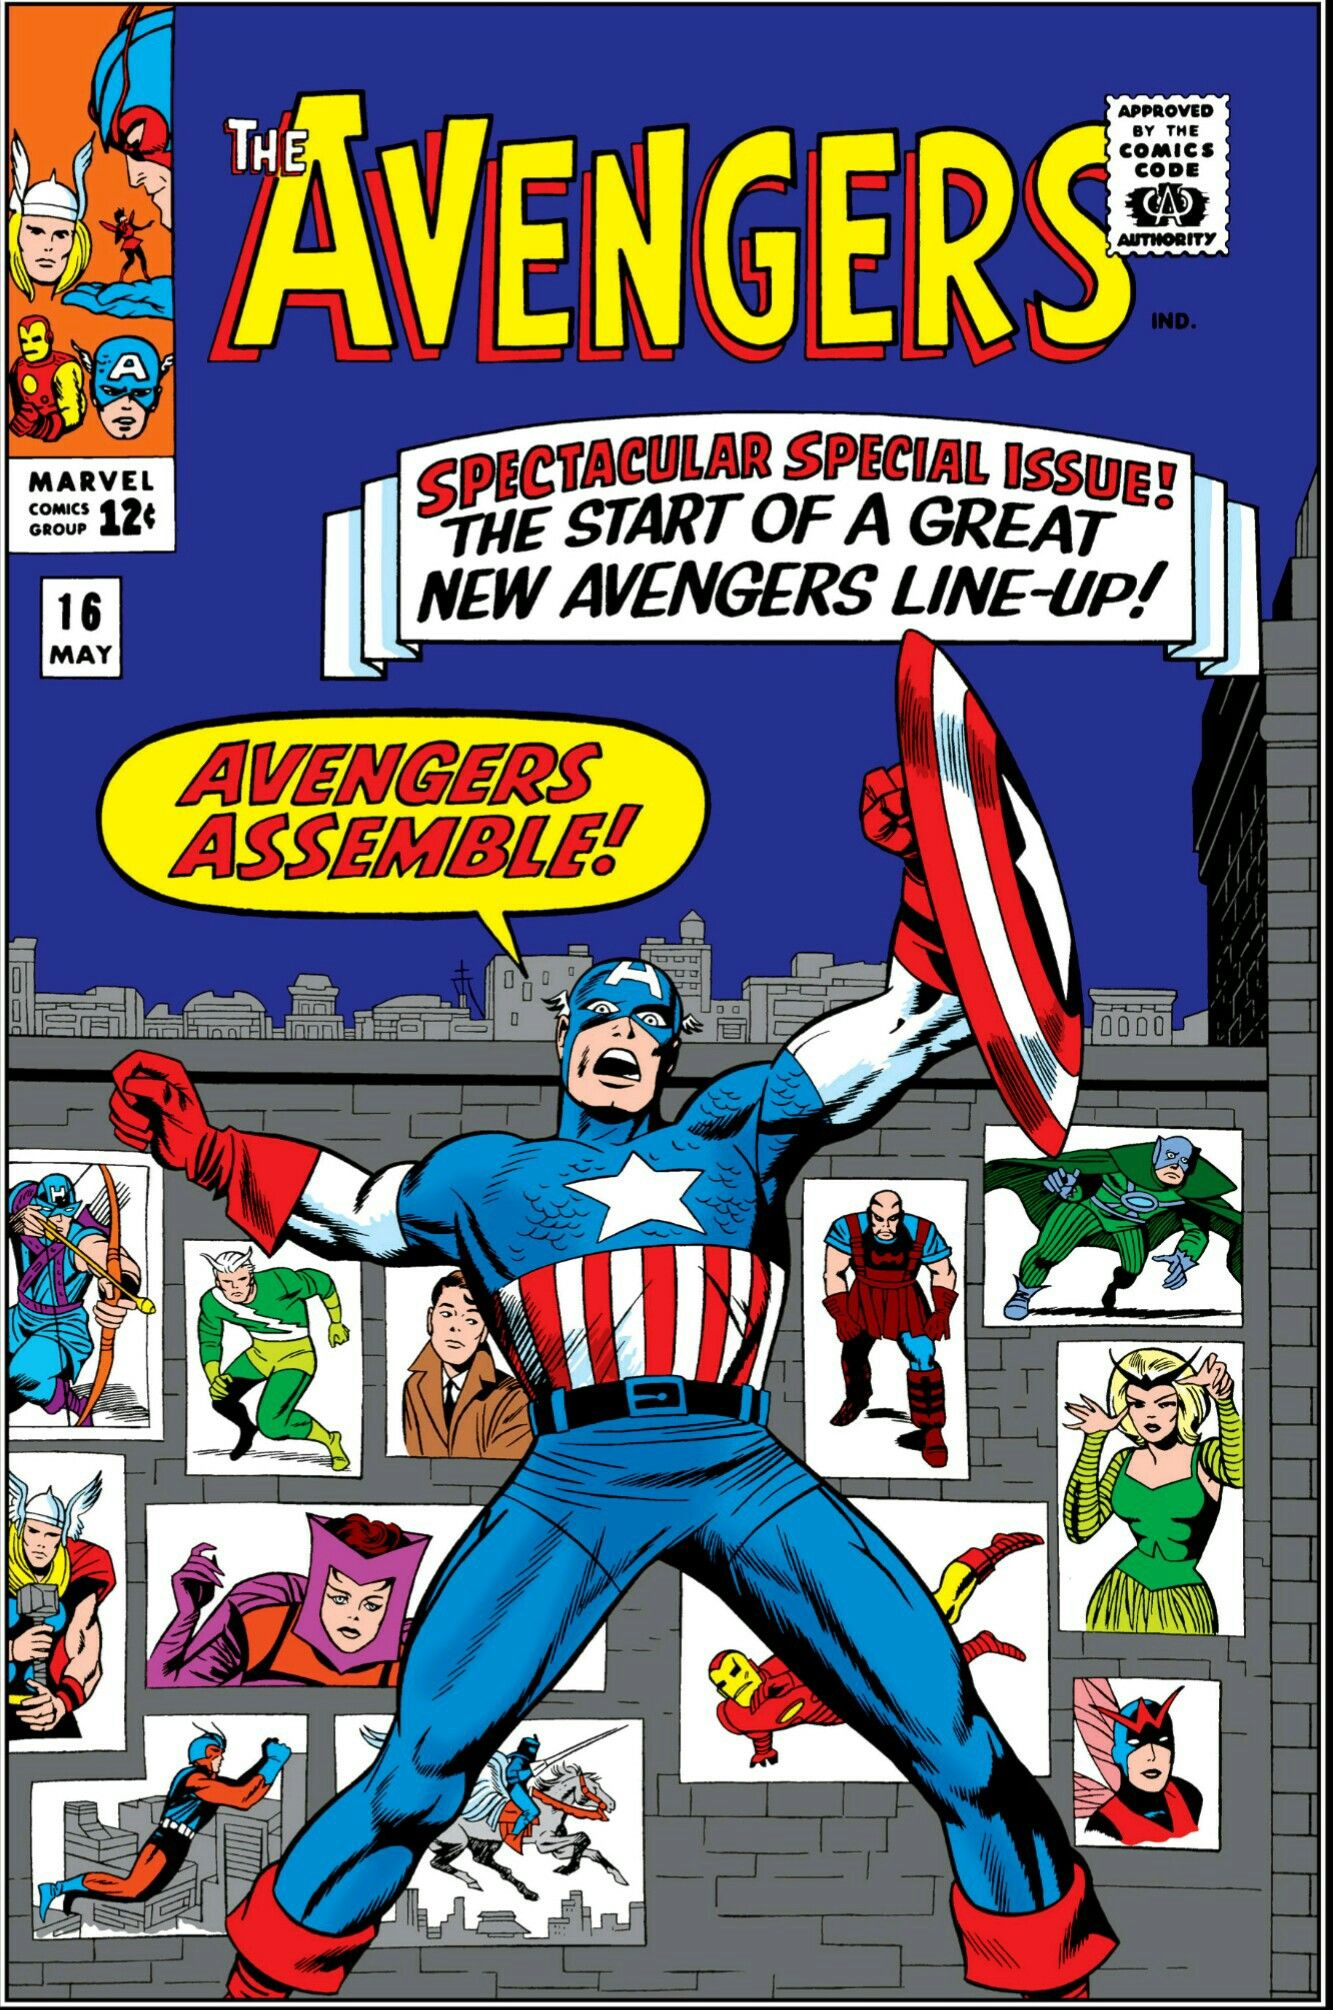 Cover of issue #16 (May '65)